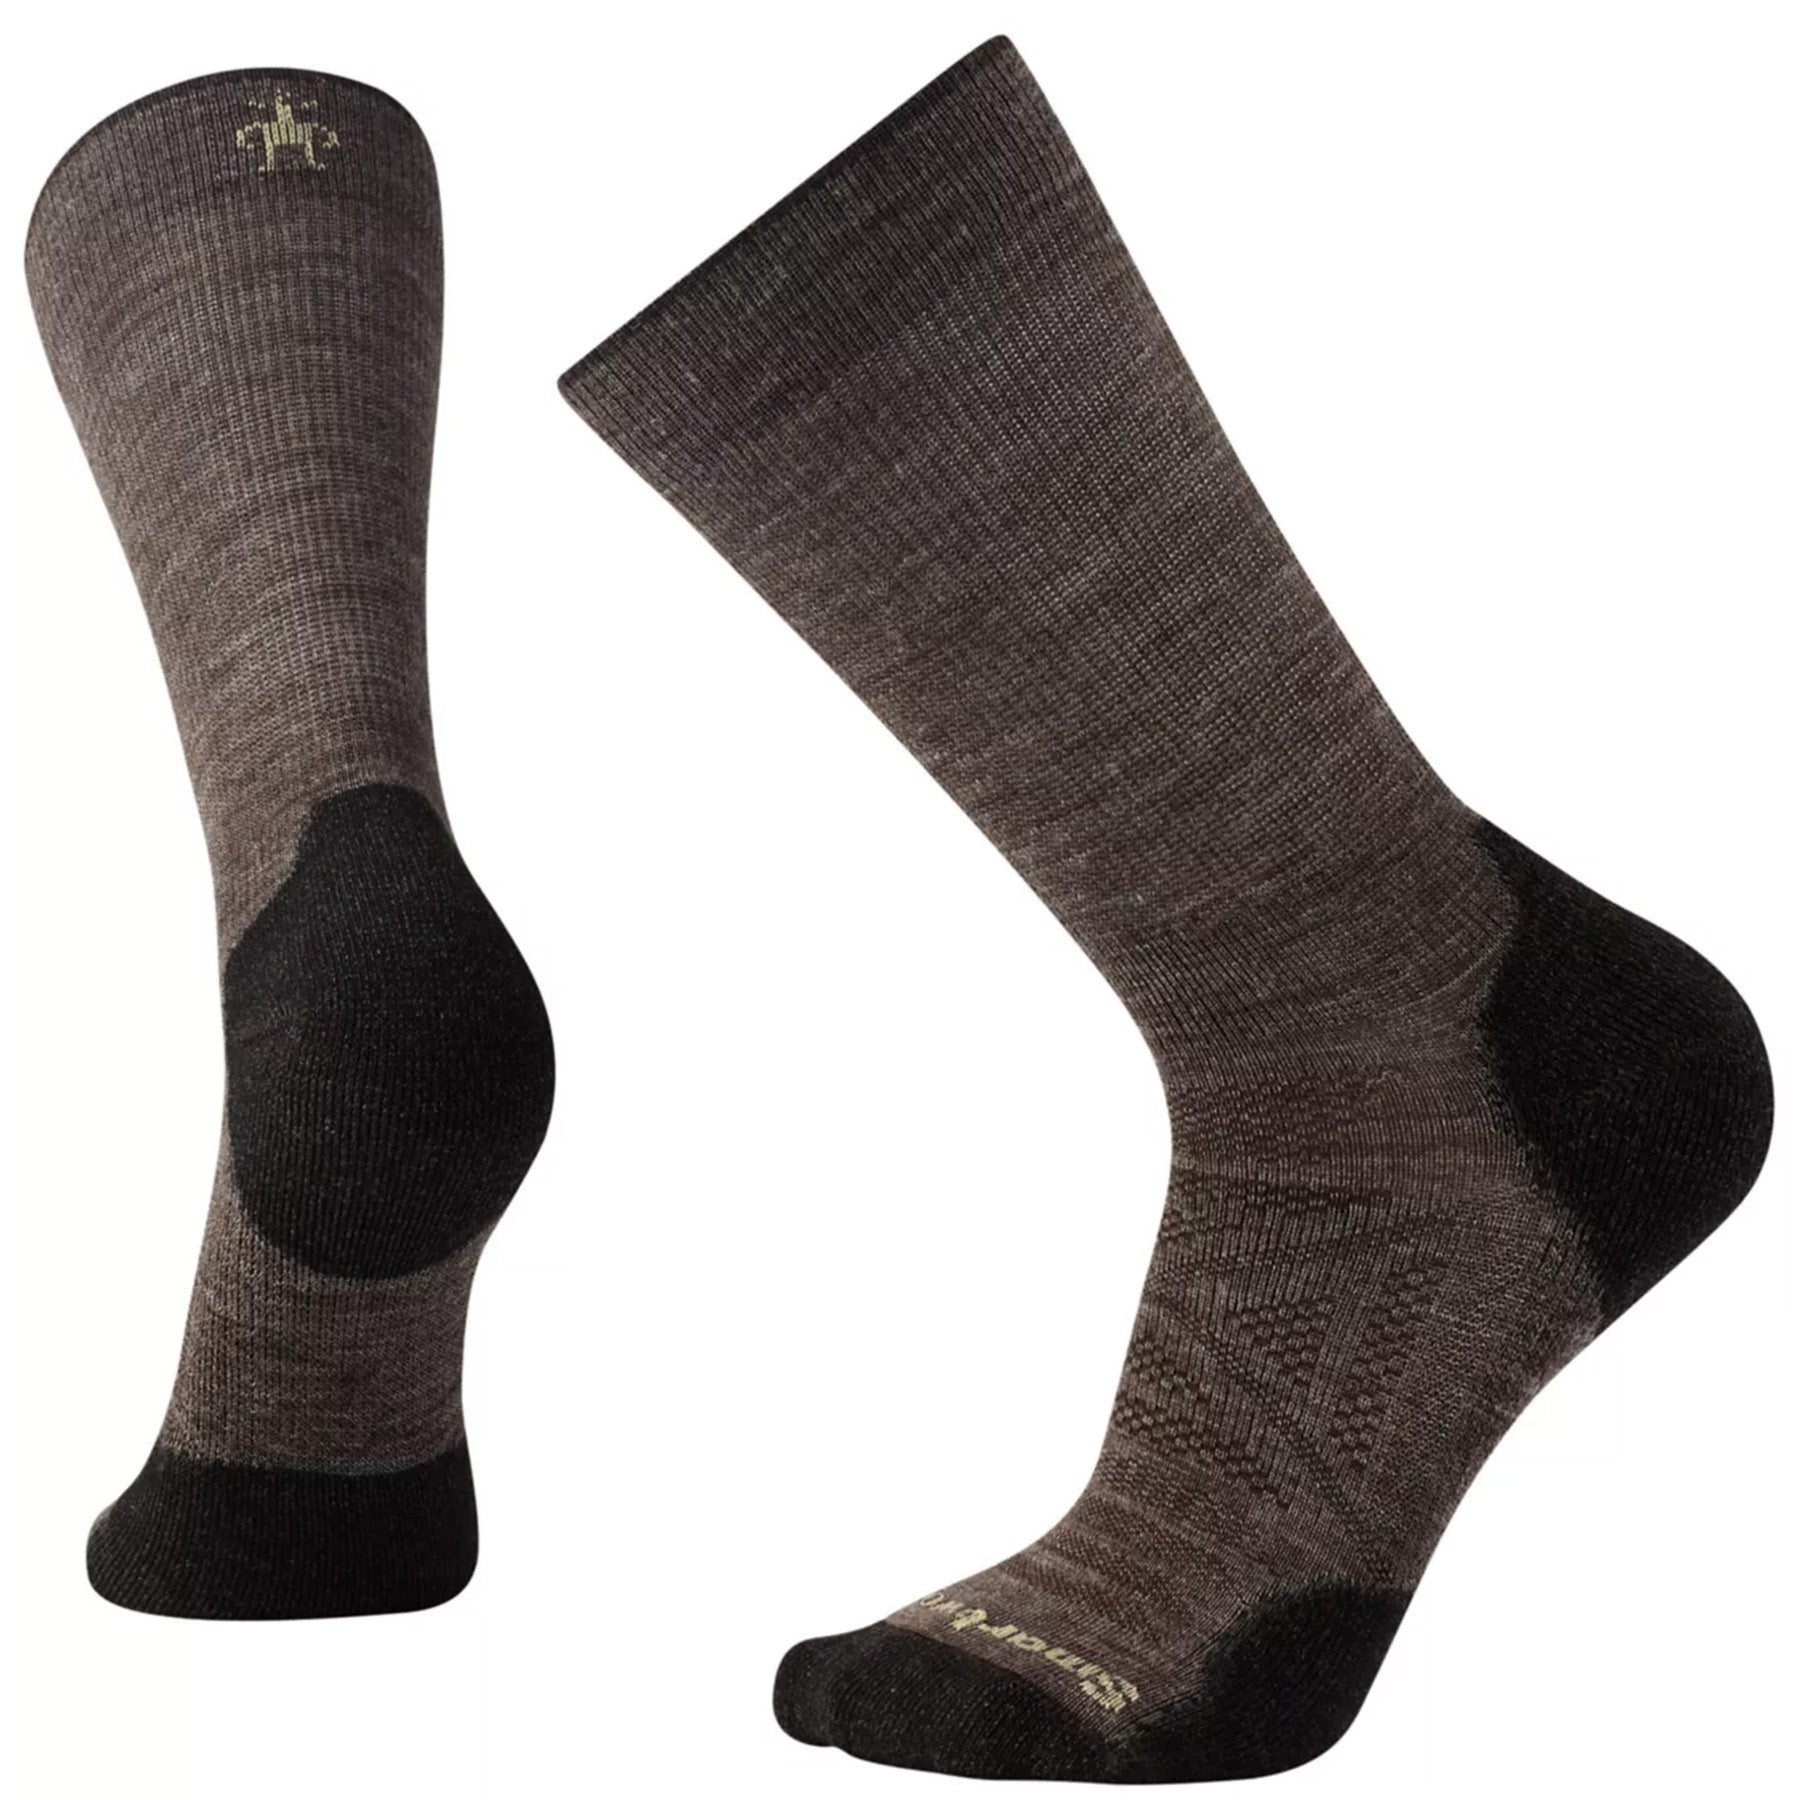 Men's PhD® Outdoor Light Hiking Crew Socks in taupe